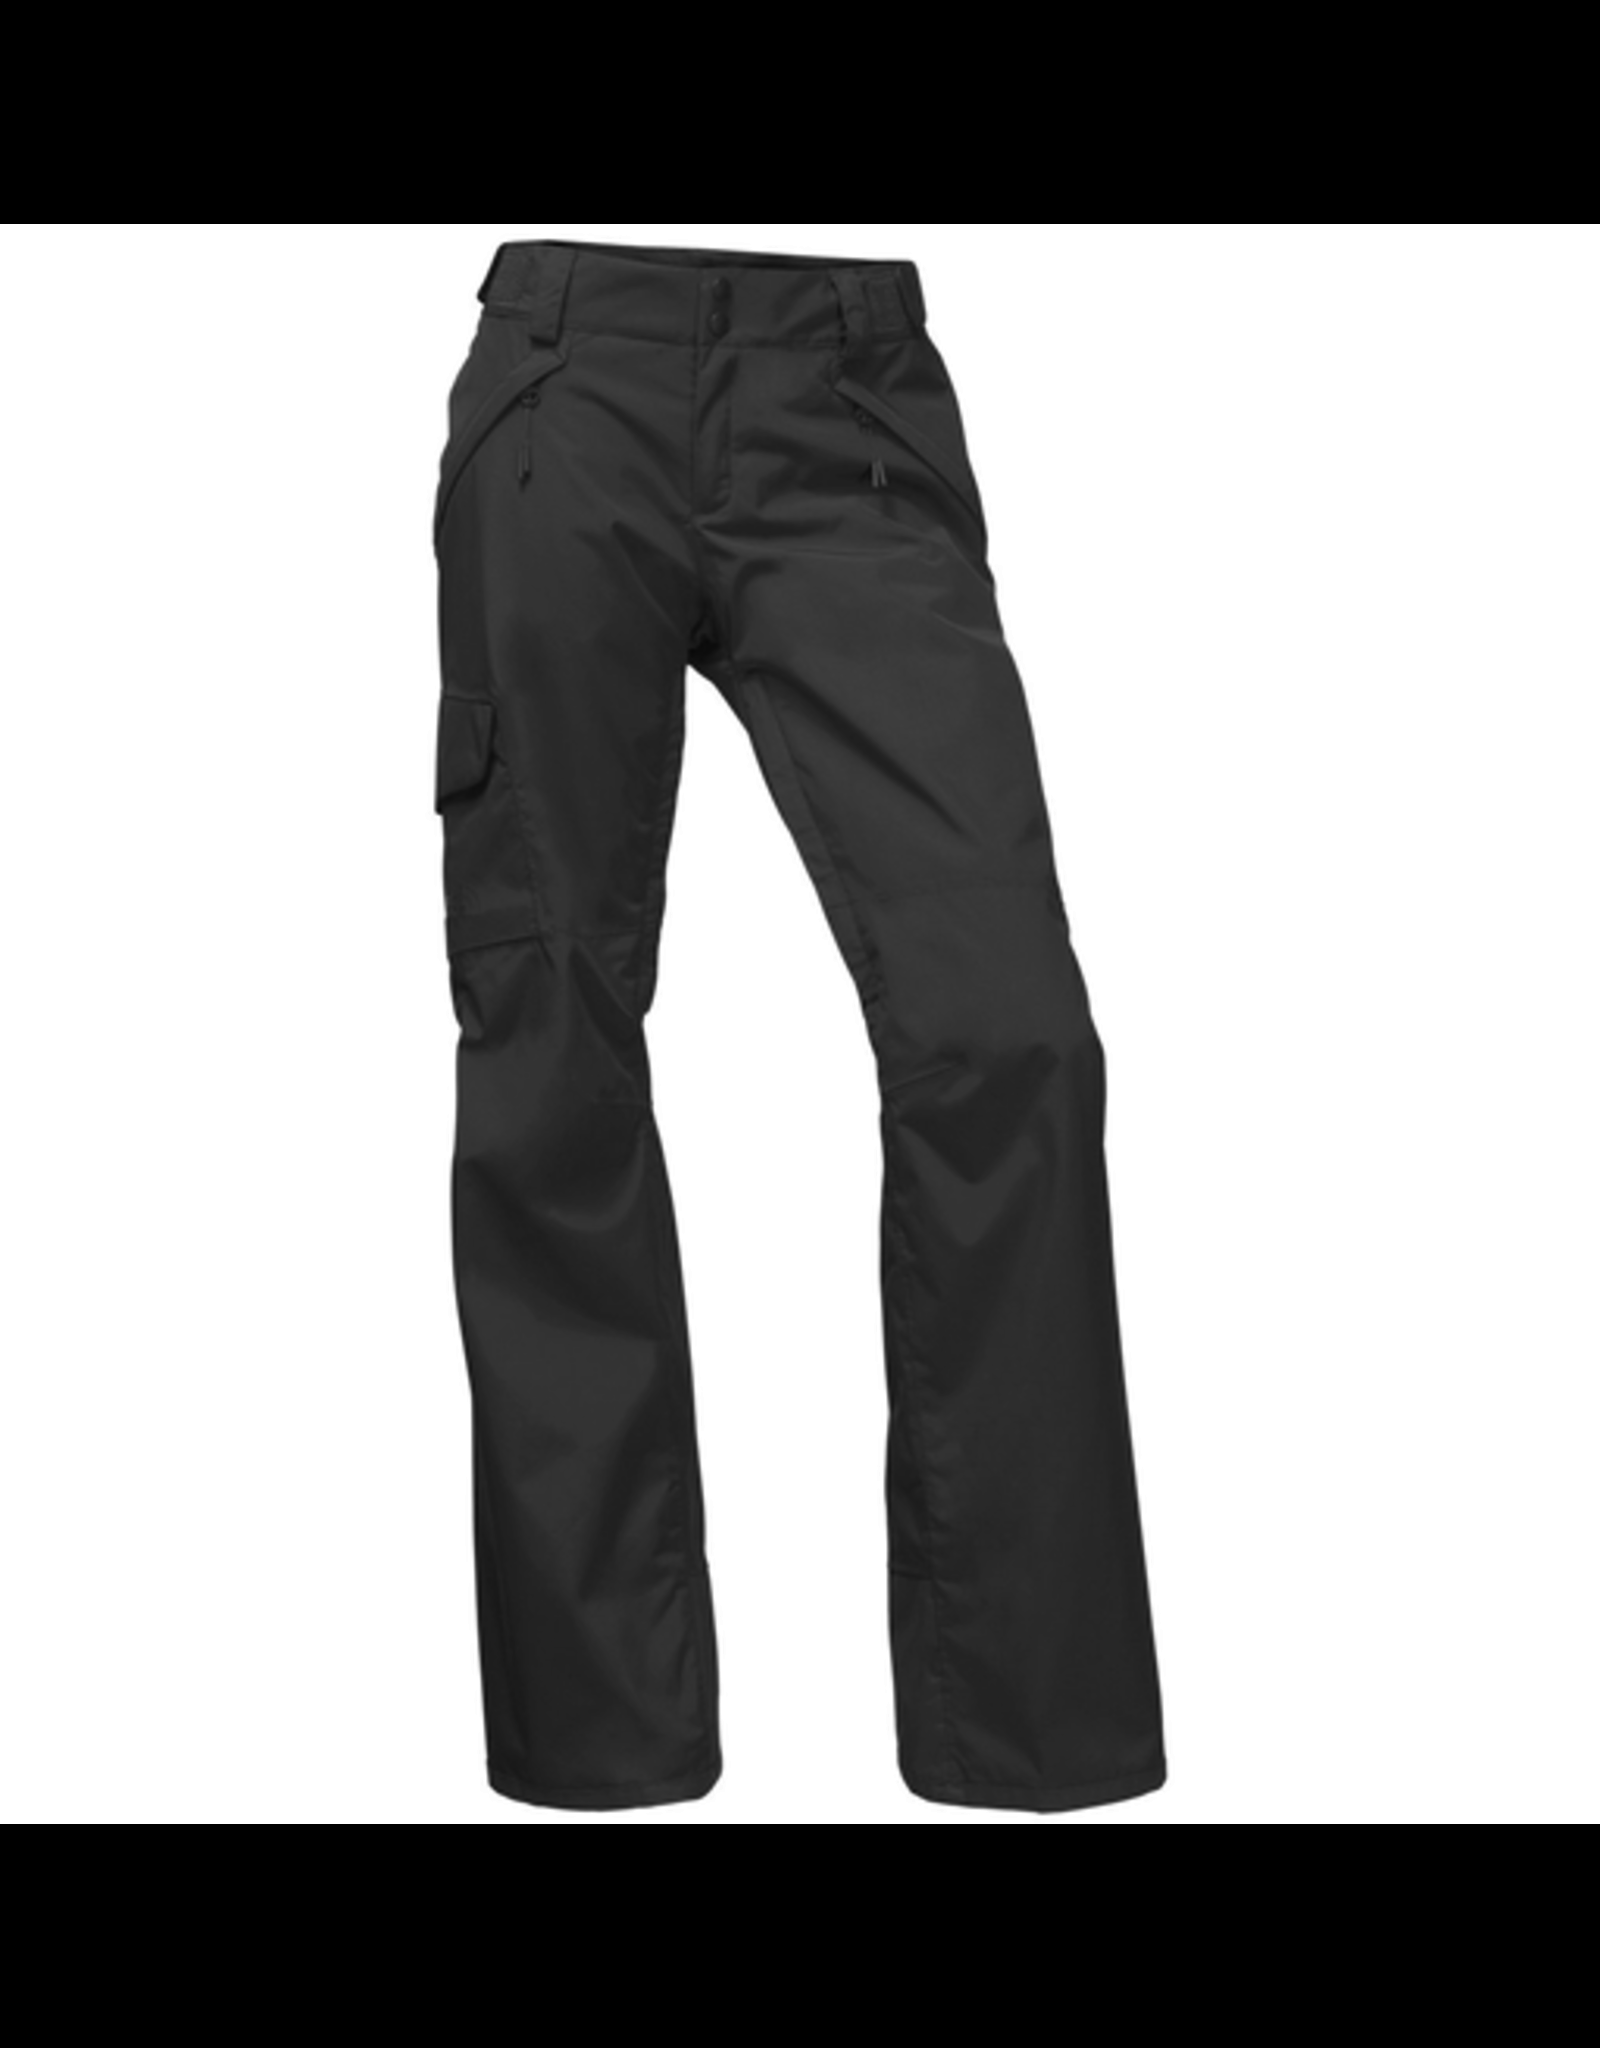 North Face North Face Women's Freedom Pants